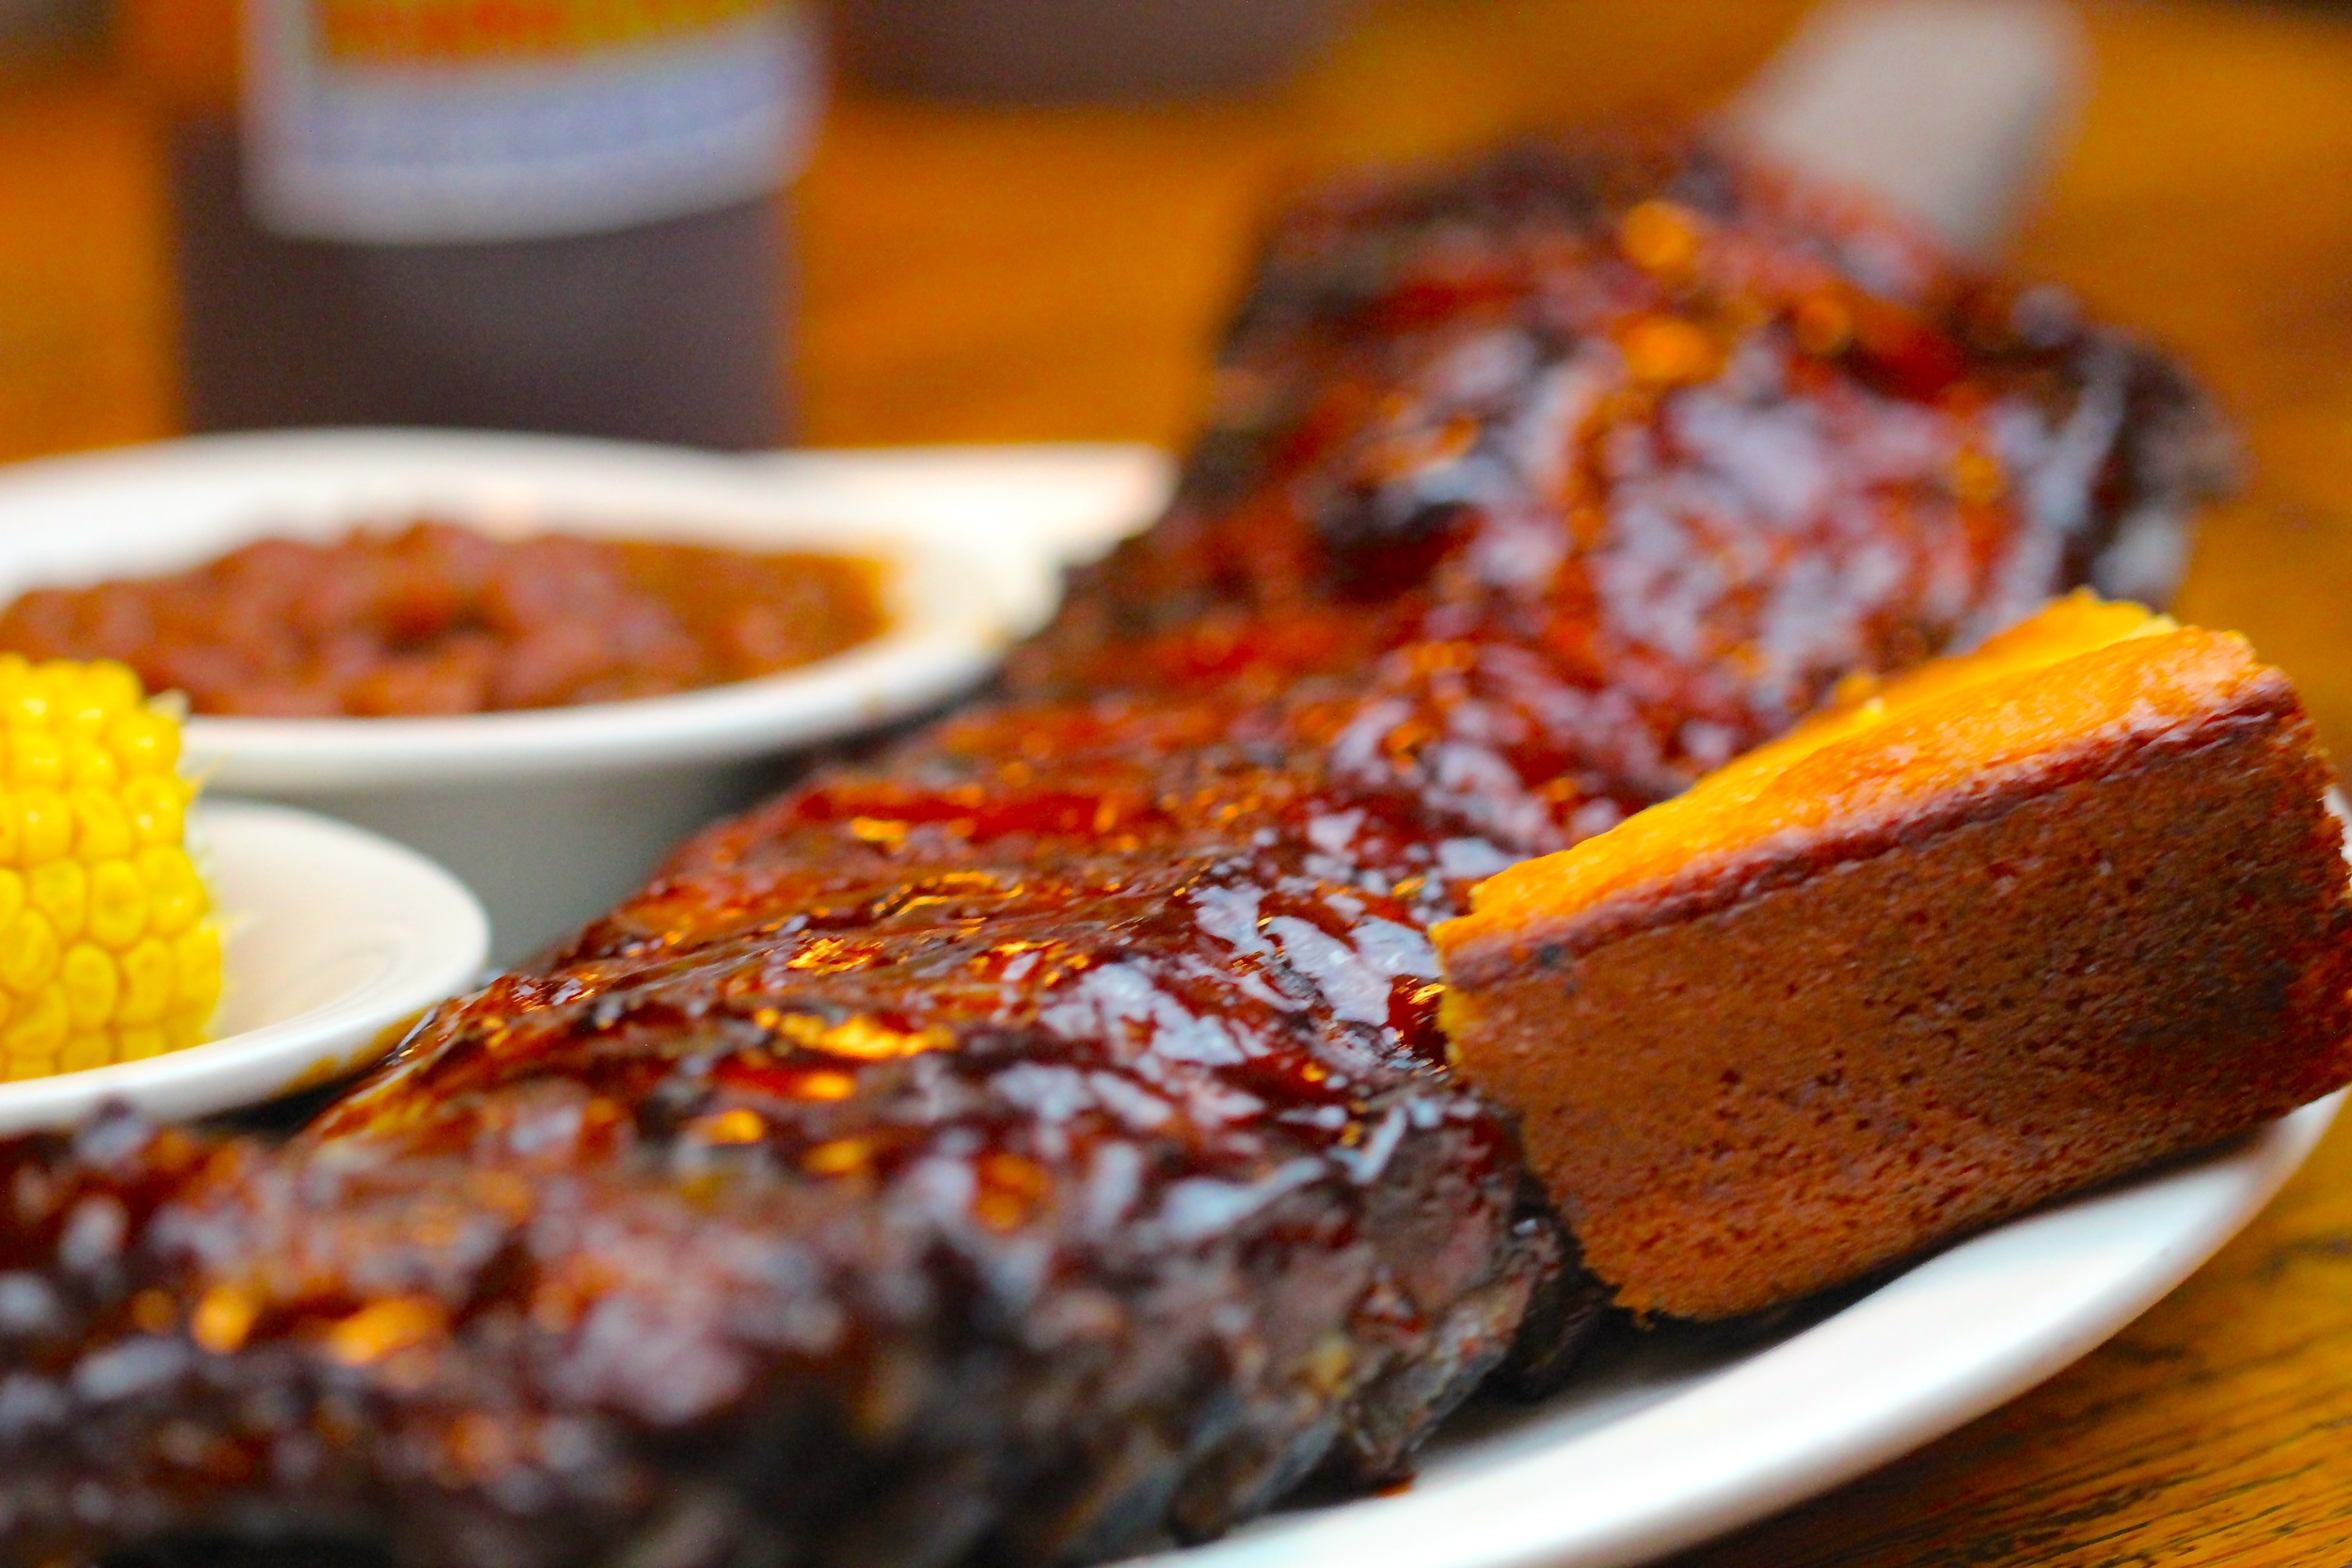 Tips for Smoking the Perfect Rack of Ribs